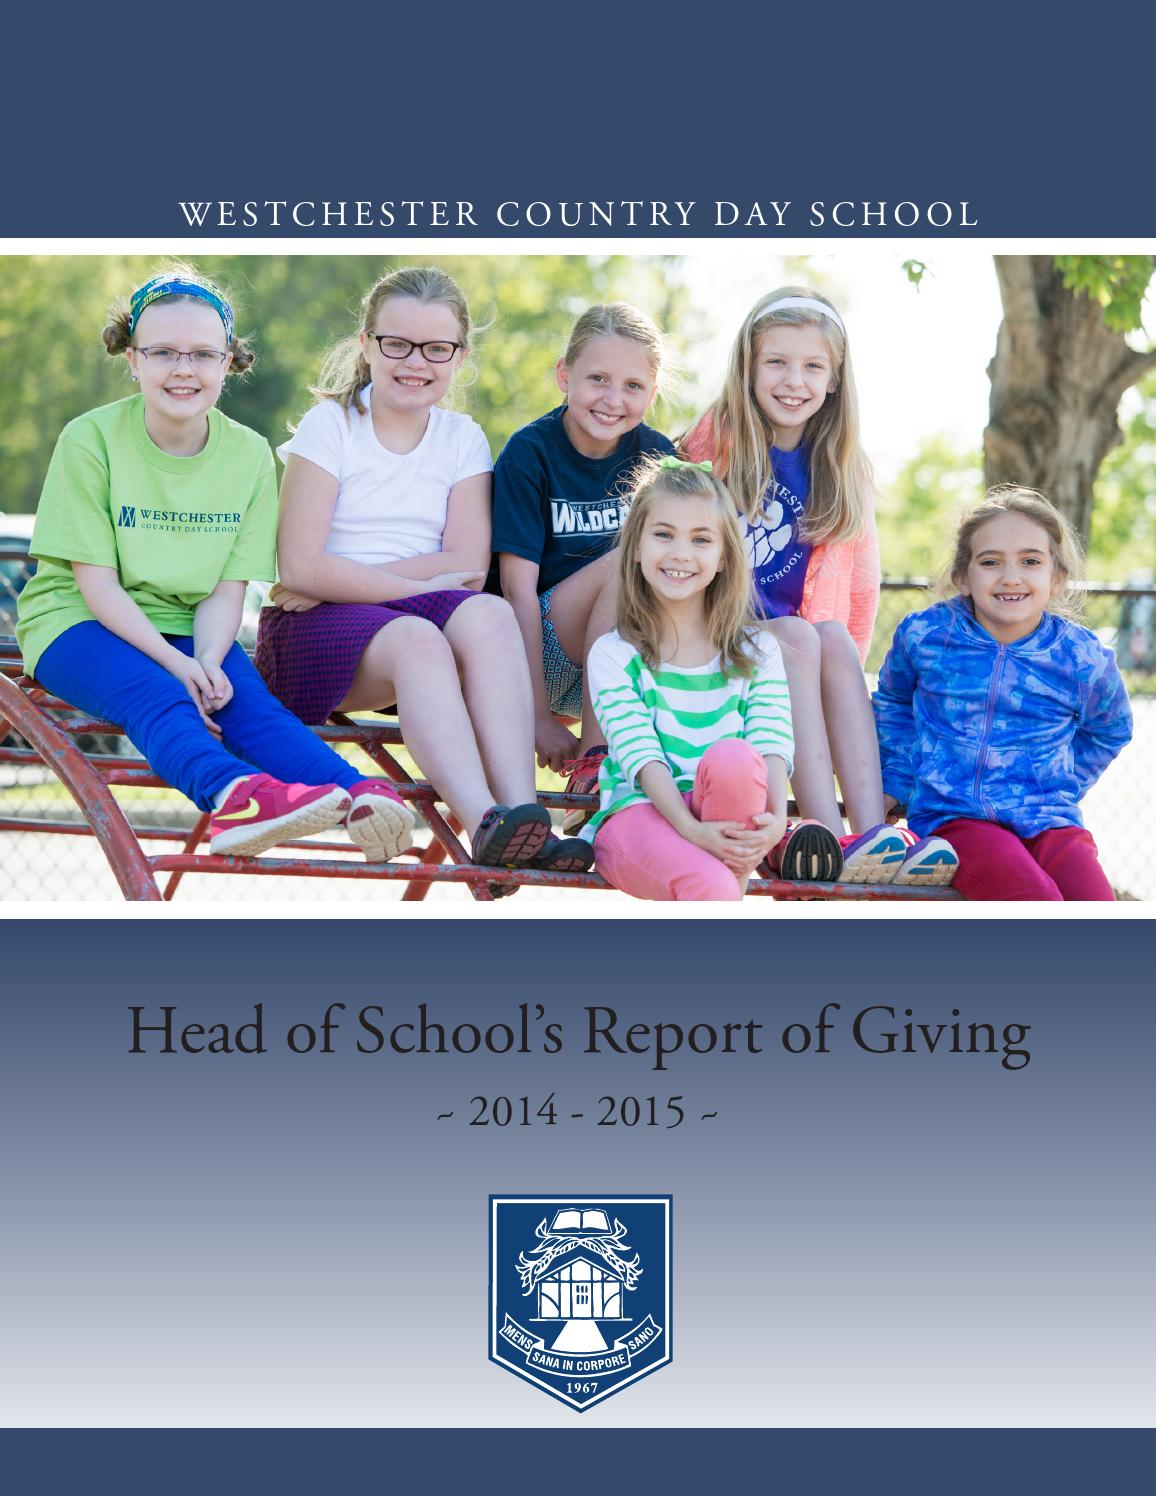 Head of School's Report 14-15 by Westchester Country Day